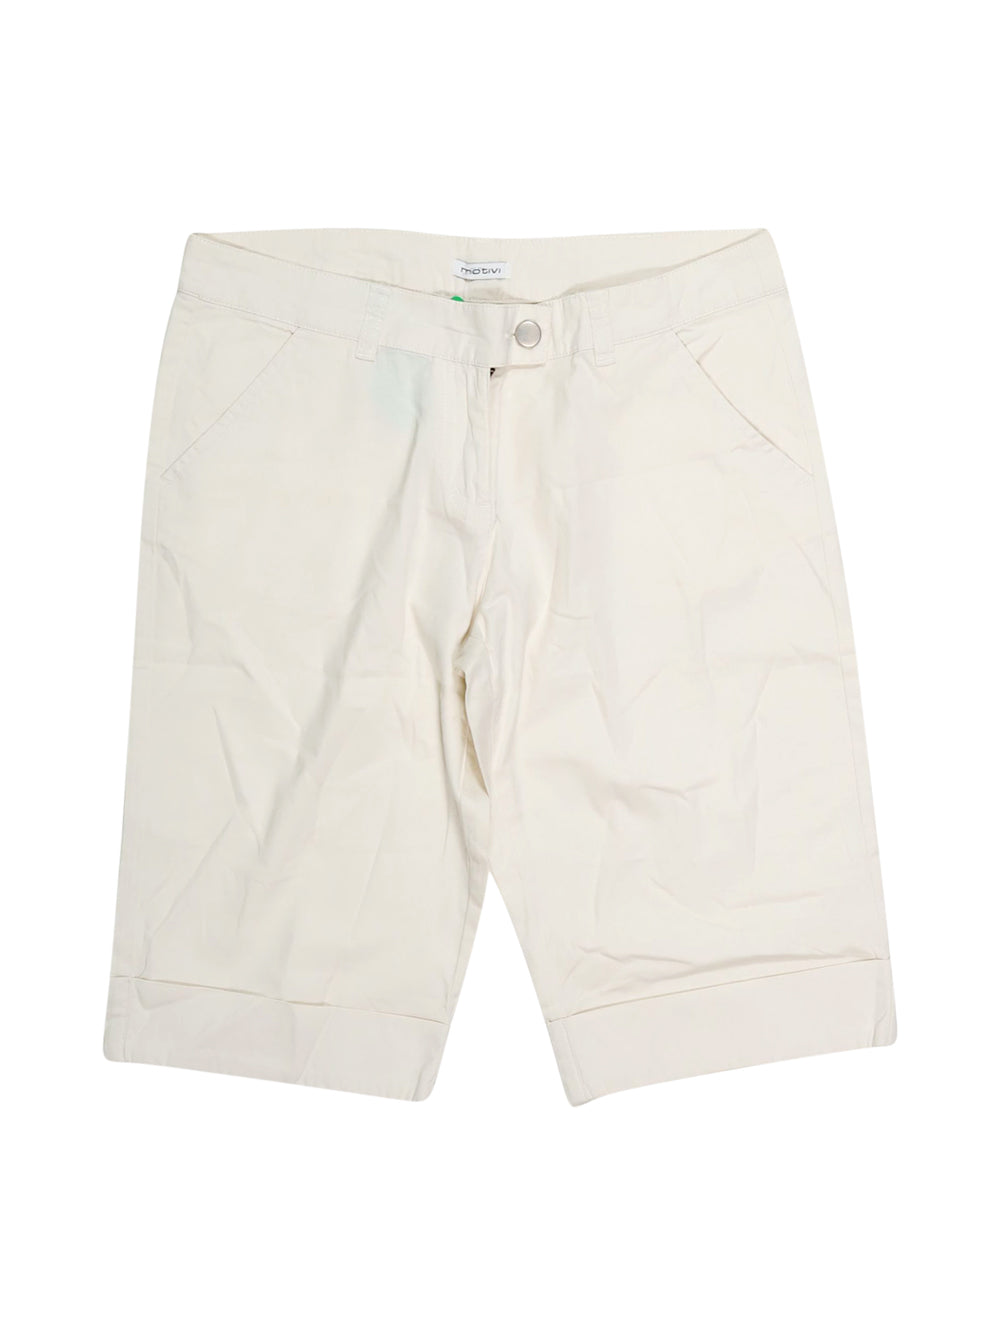 Front photo of Preloved Motivi White Woman's shorts - size 10/M